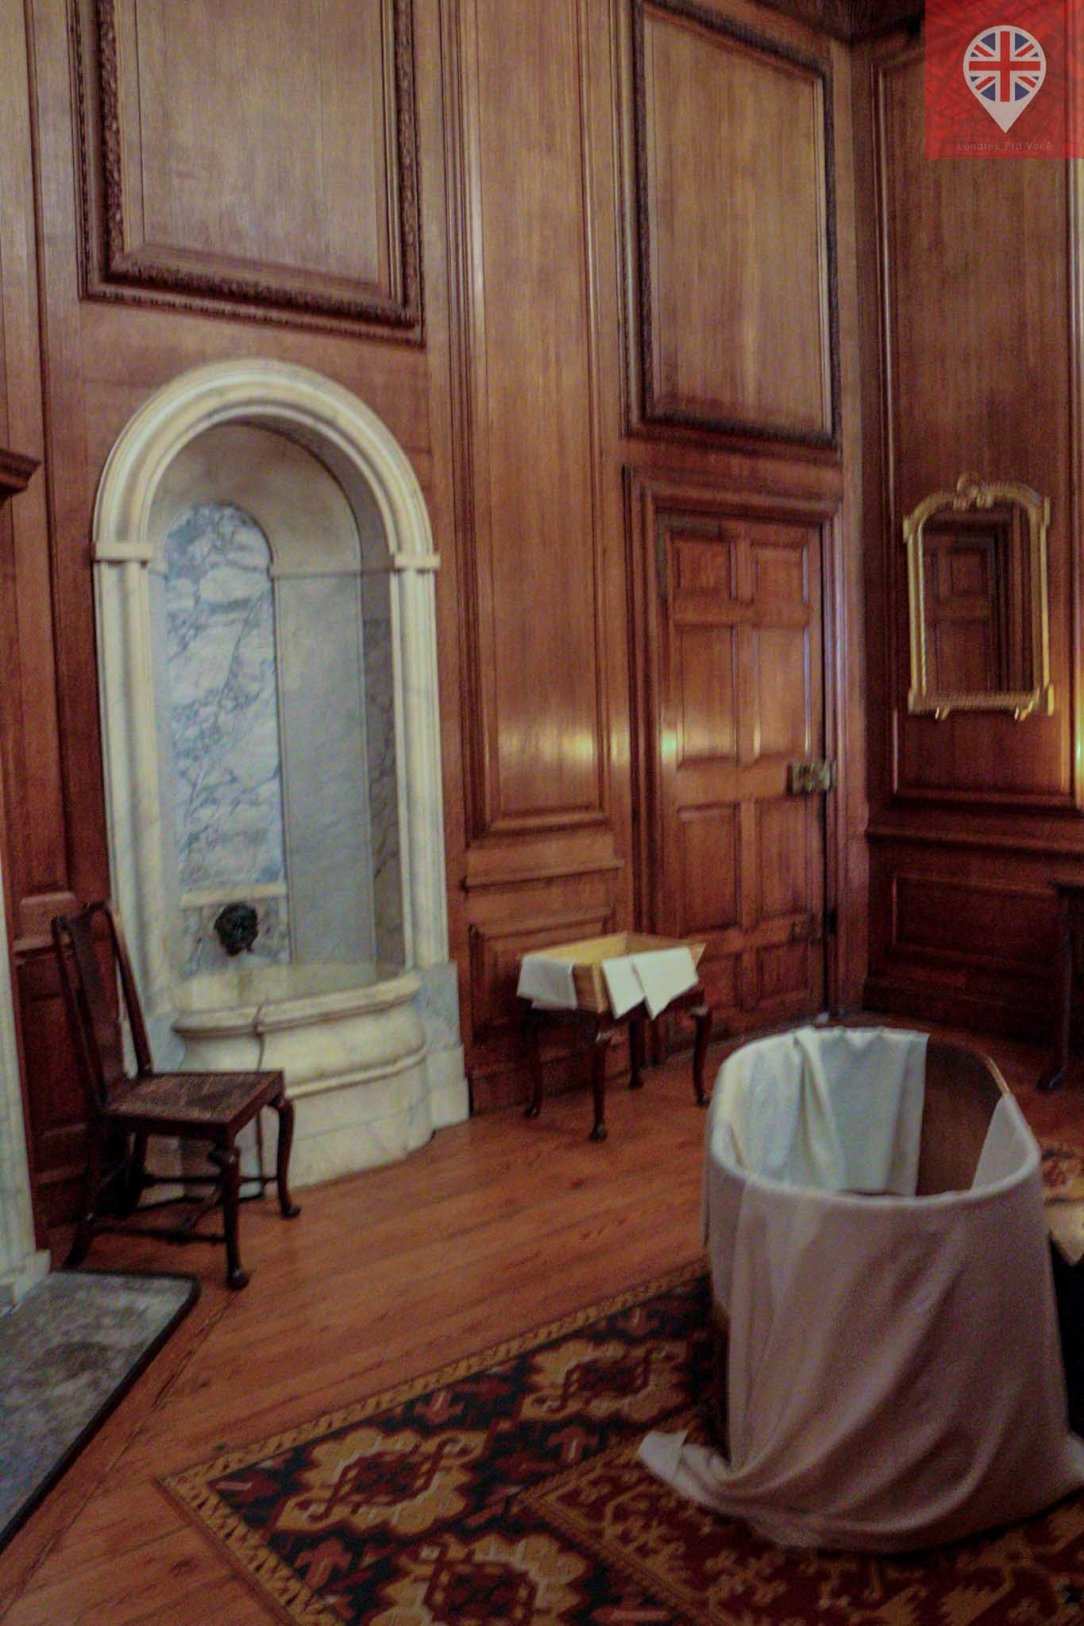 Hampton Court queens bathroom